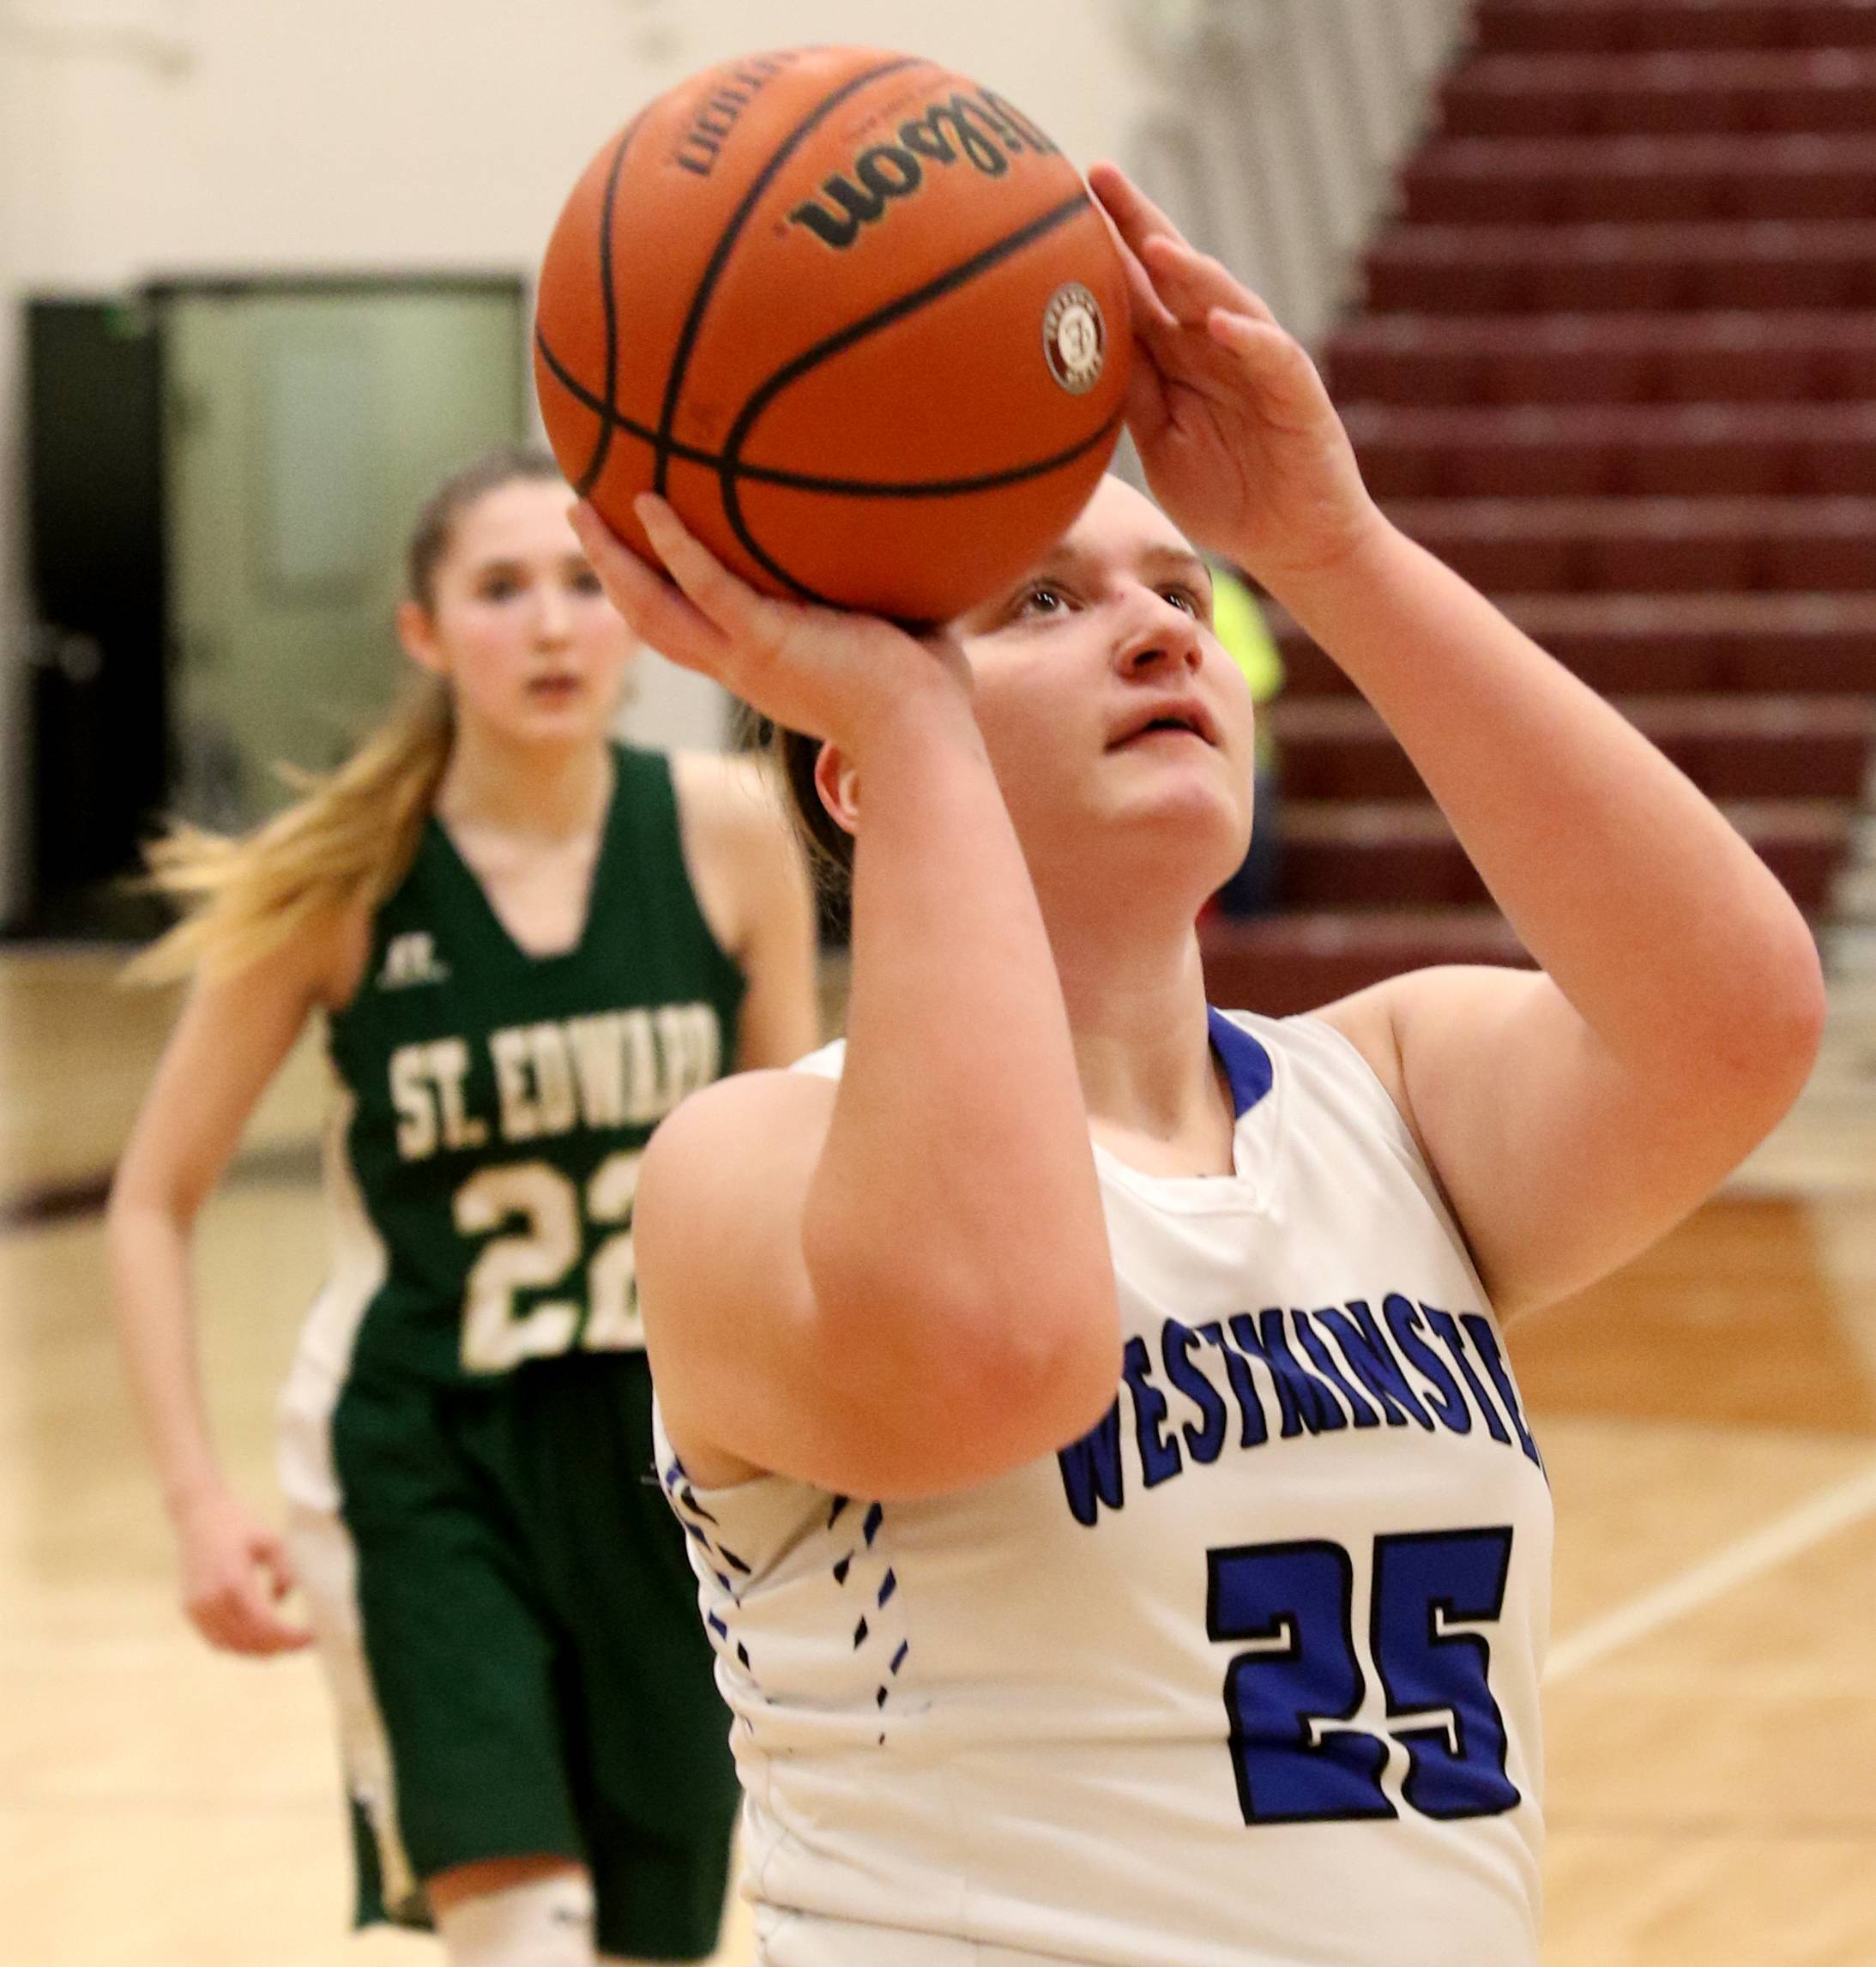 Westminster Christian's  Grace Schmitt moves to the hoop against St Edward during Elgin City Classic Girls Basketball Tournament action at Chesbrough Fieldhouse on the campus of Elgin High School Wednesday night.